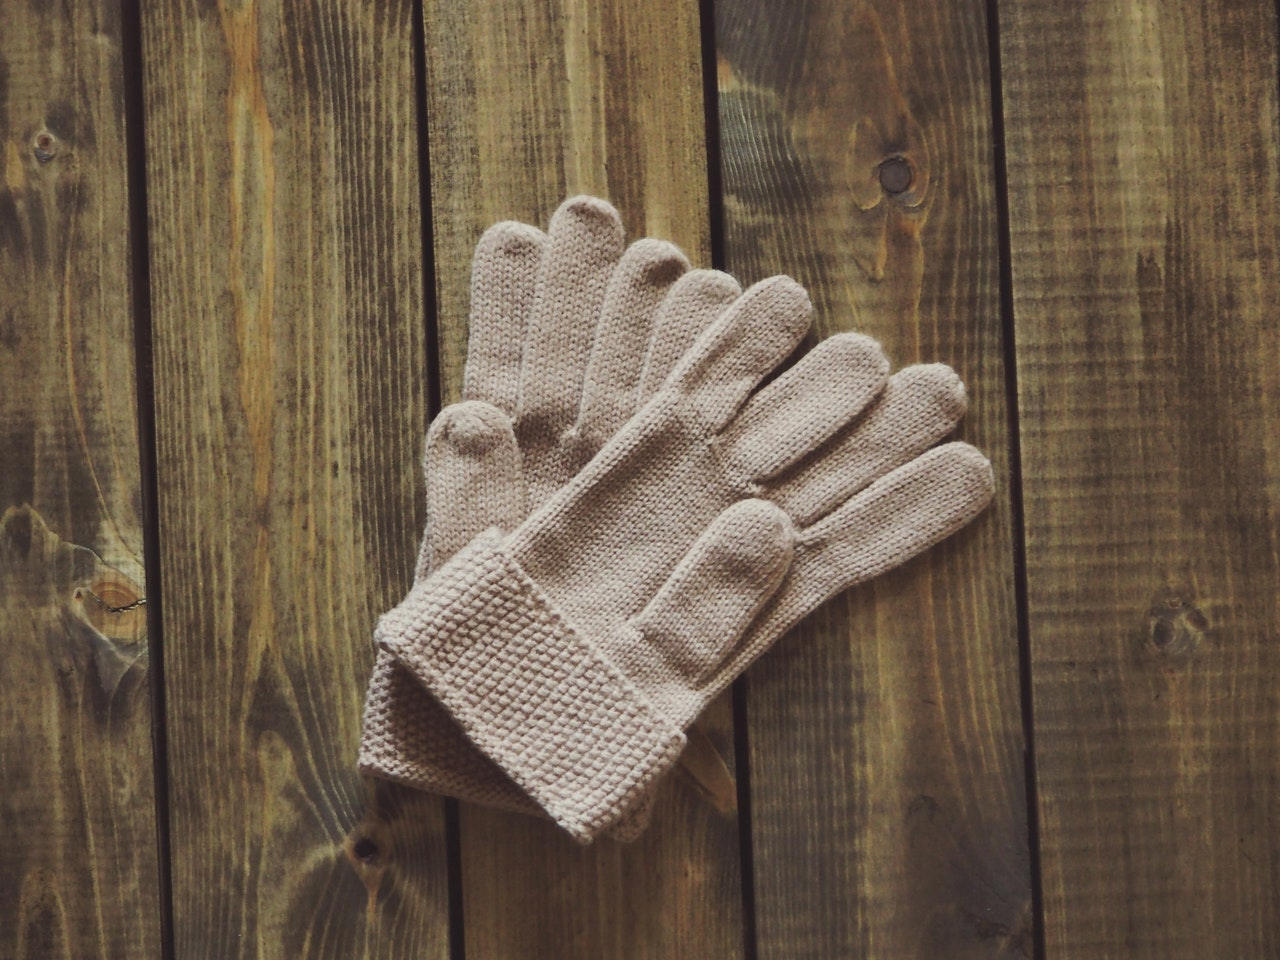 Gloves for protection and nail care